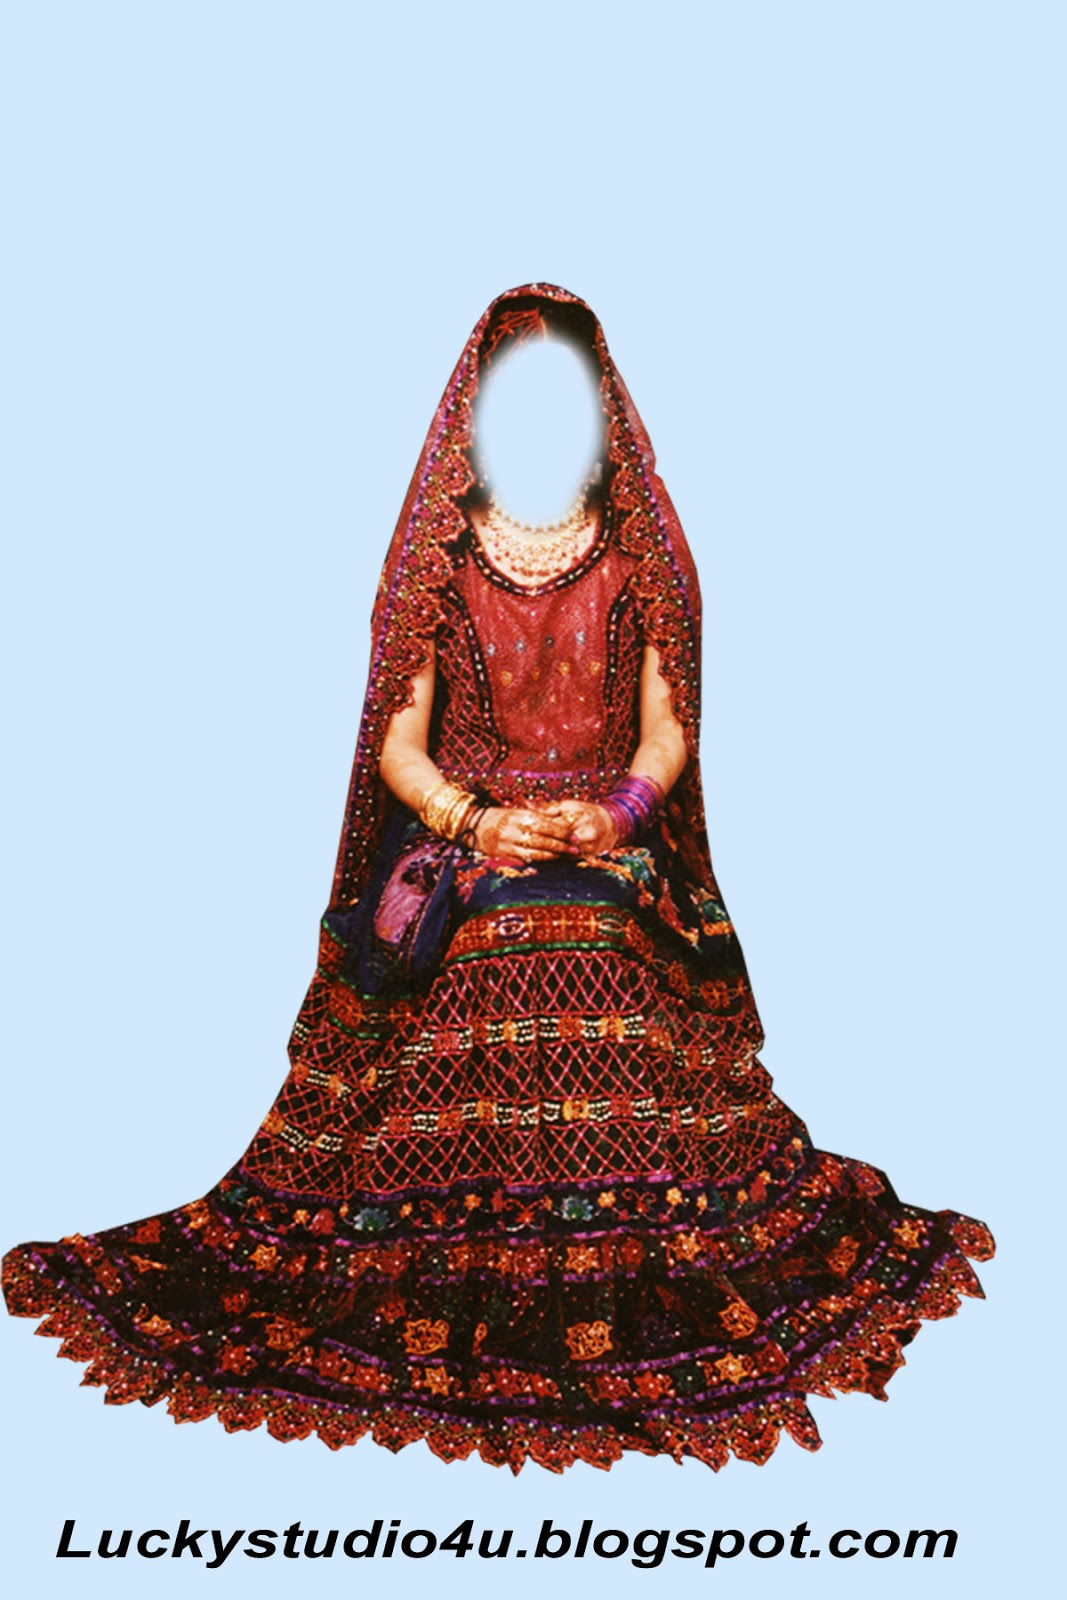 new indian bridal dress psd file for photoshop